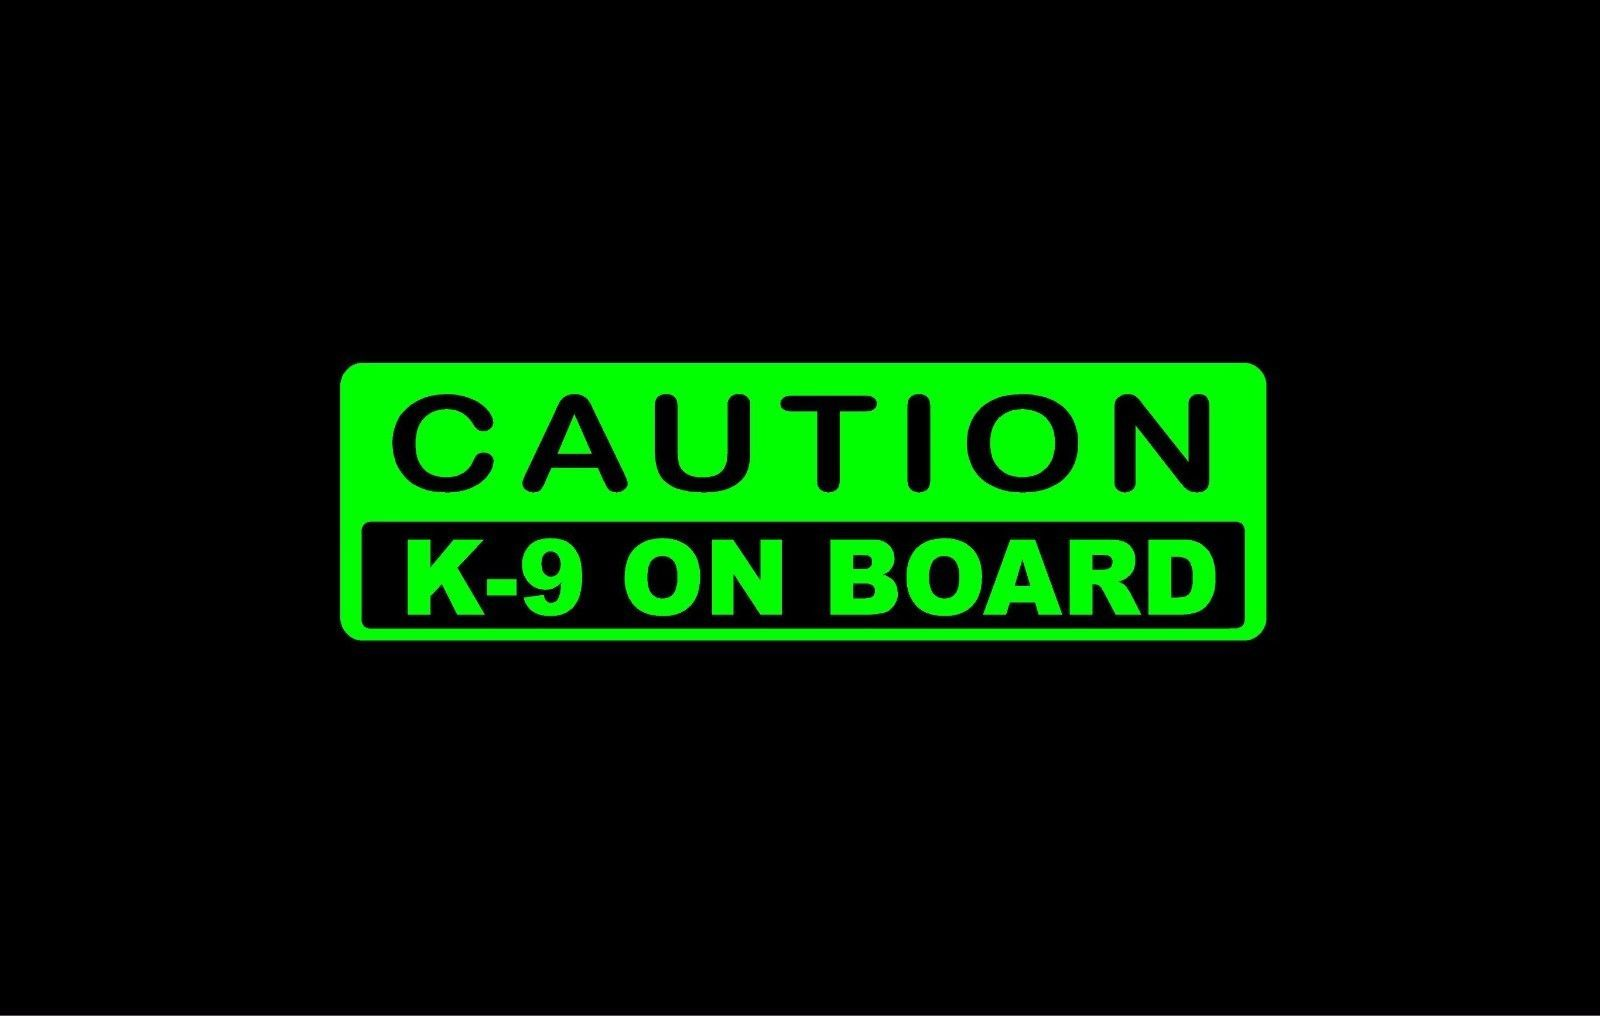 4 5 caution k 9 on board decal 3 5 x 11 7 inches car window stickers 10 colors ebay home garden